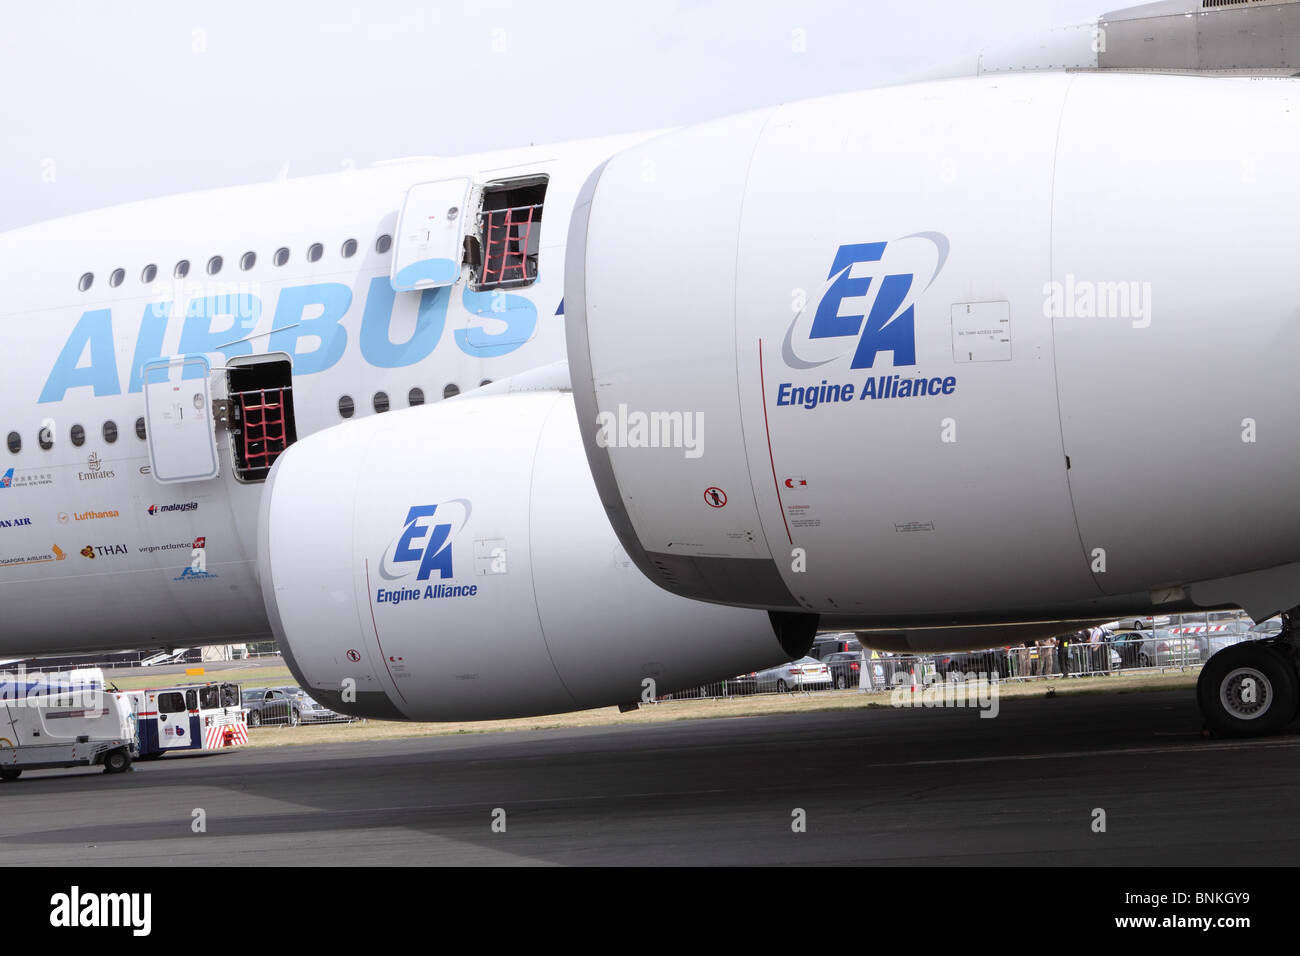 Airbus A380 jet airliner with EA Engine Alliance GP7200 engines - Stock Image